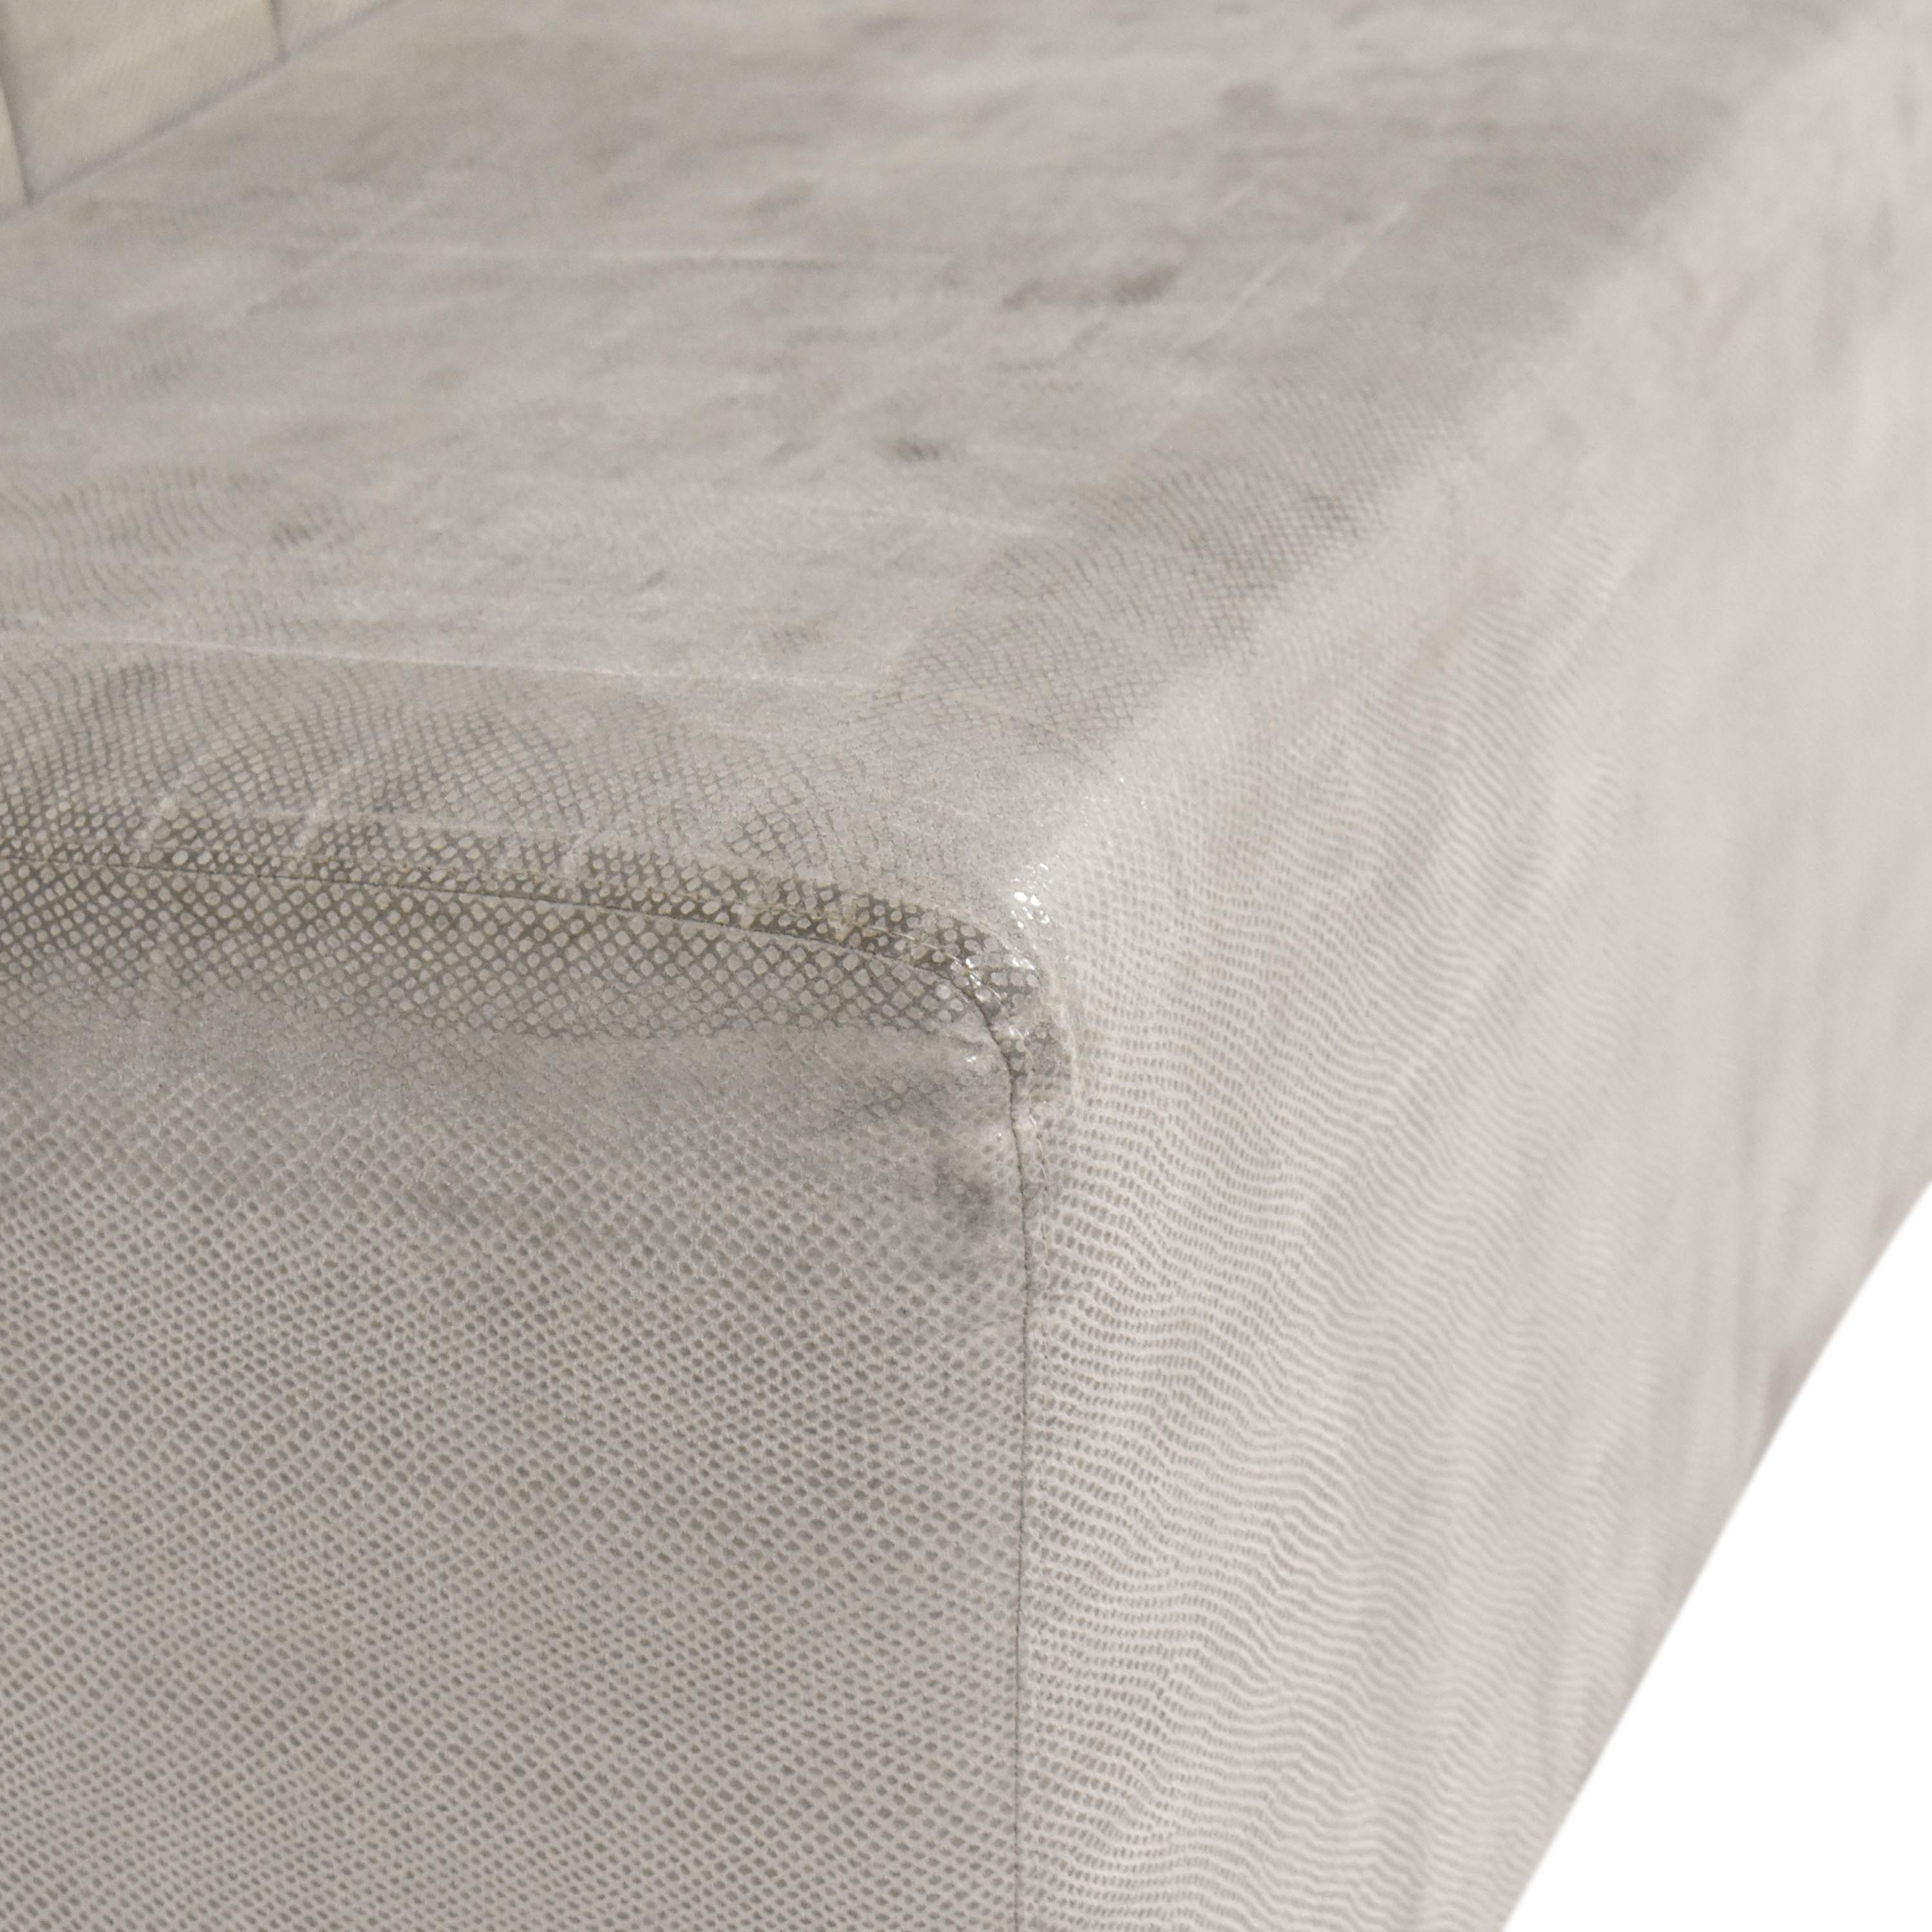 Tufted Banquette Bench second hand